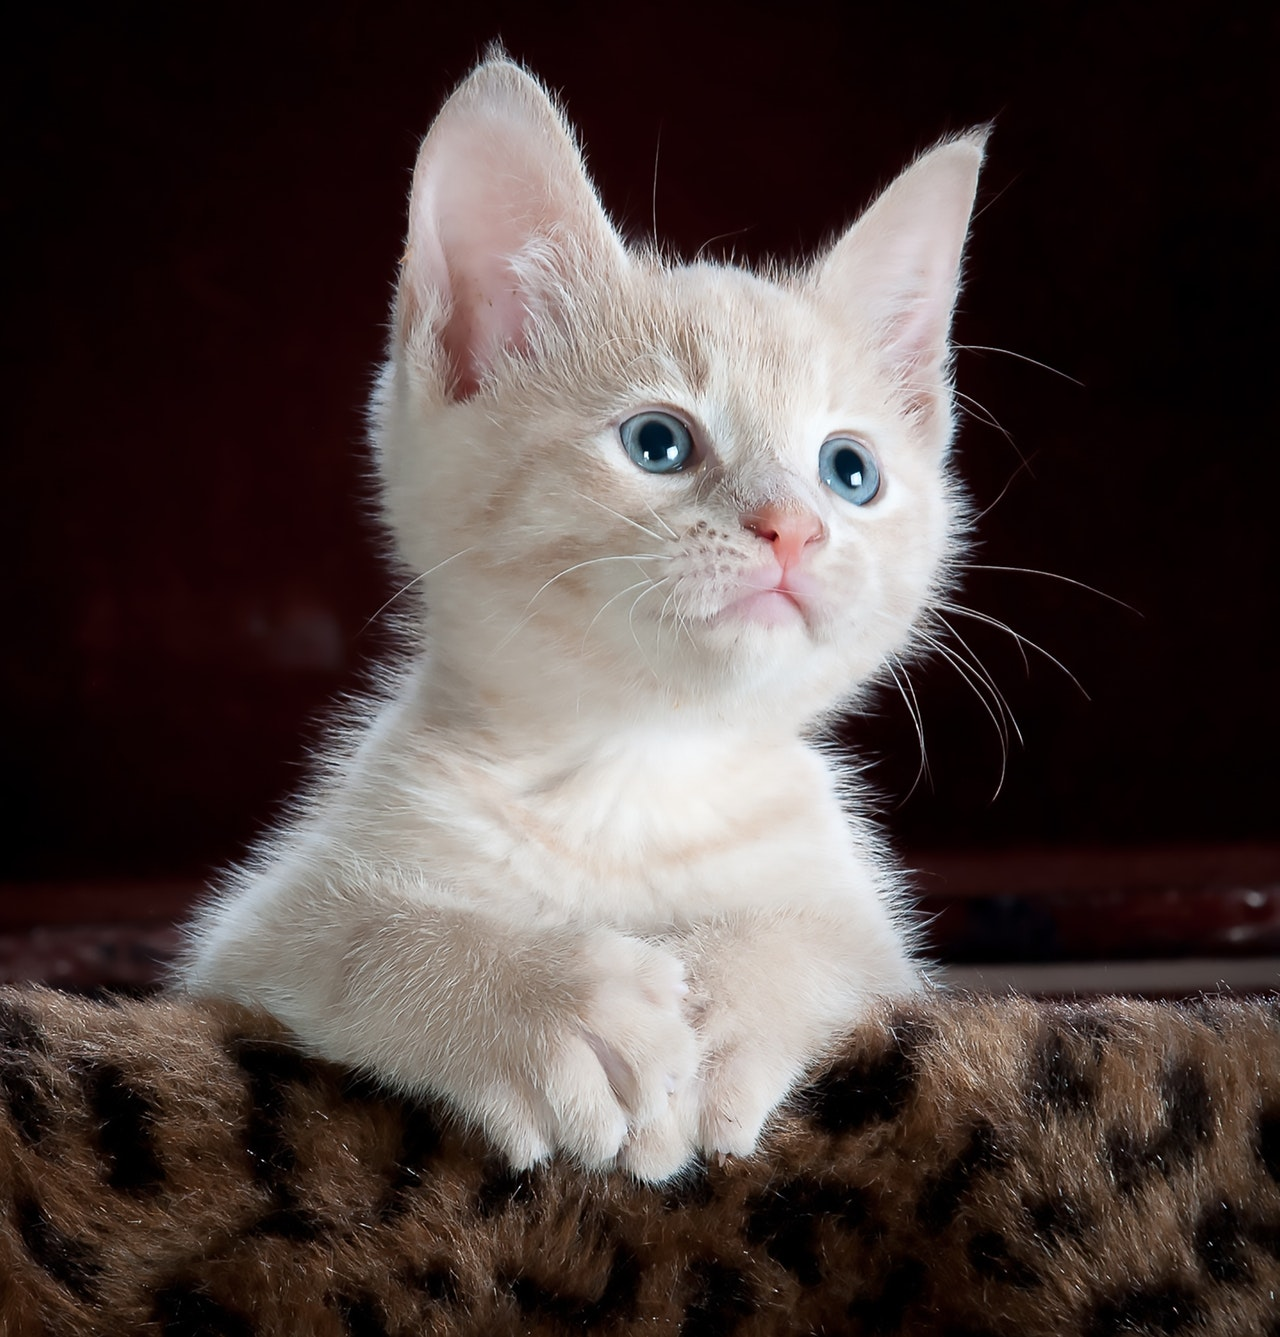 120-cat-name-ideas-from-movies